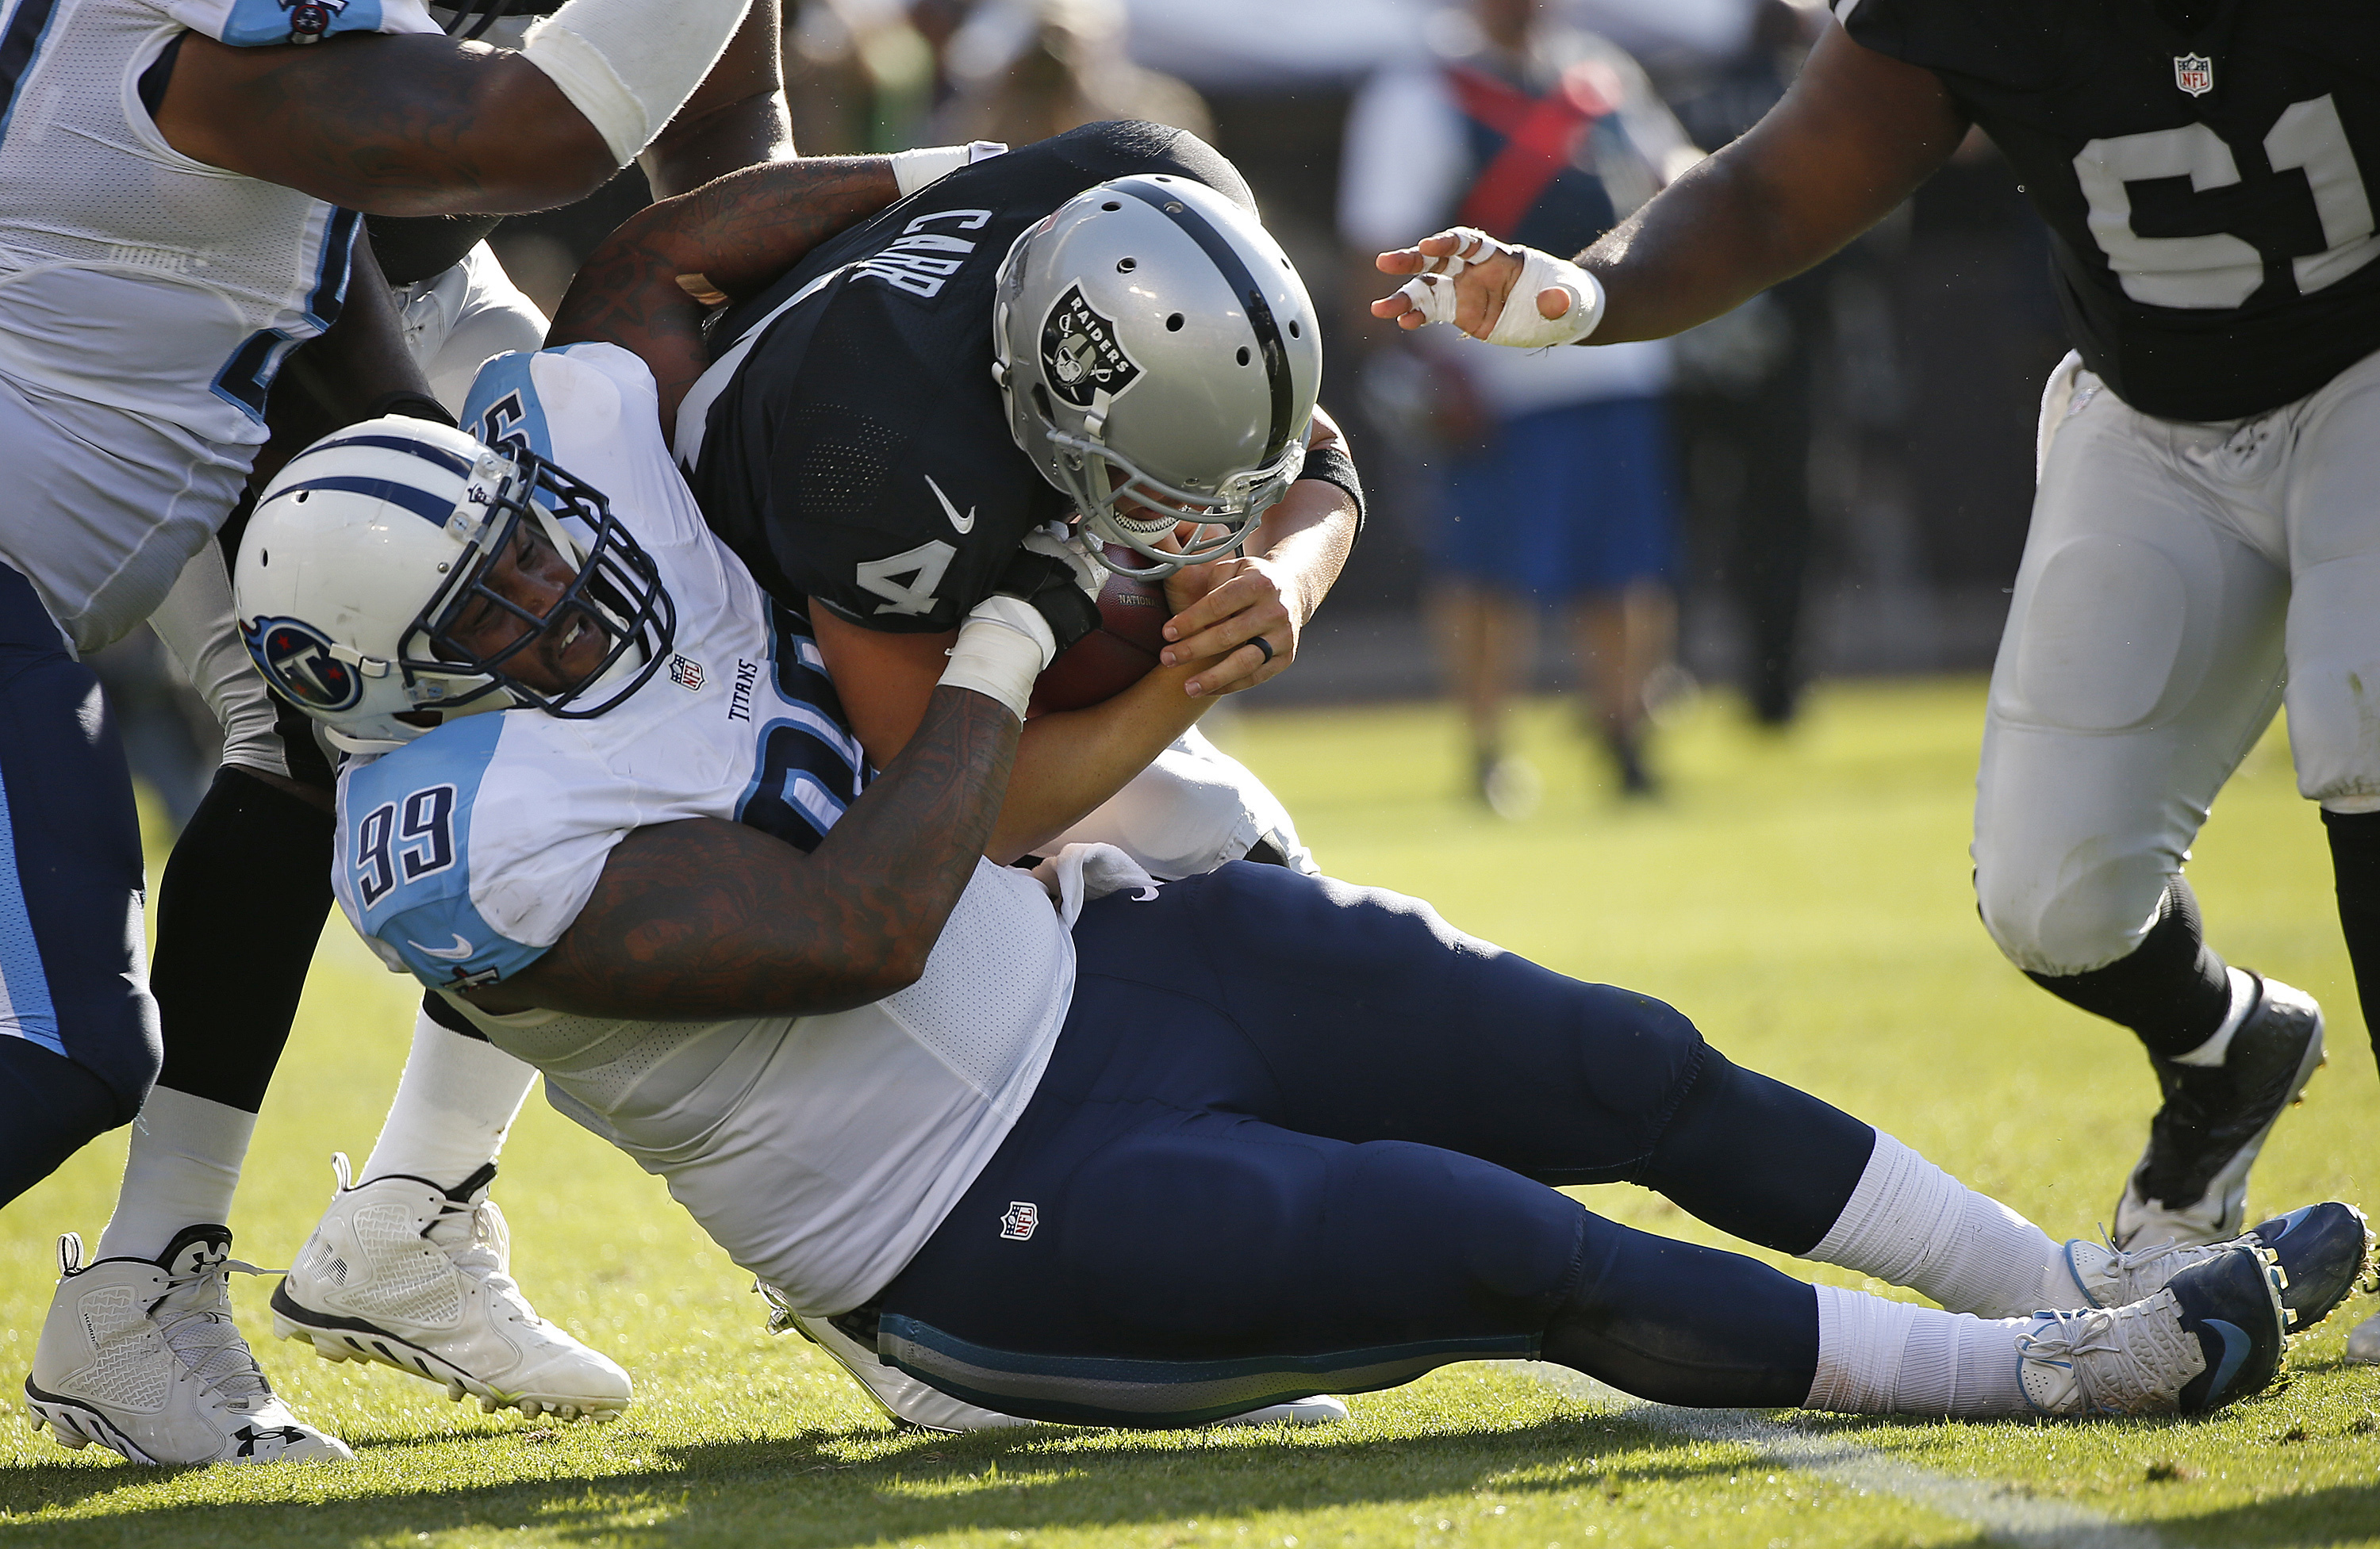 FILE - In this Aug. 27, 2016, file photo, Oakland Raiders quarterback Derek Carr is sacked by Tennessee Titans defensive end Jurrell Casey (99) during the first half of an NFL preseason football game, in Oakland, Calif.  The Titans got close to Shaun Hill